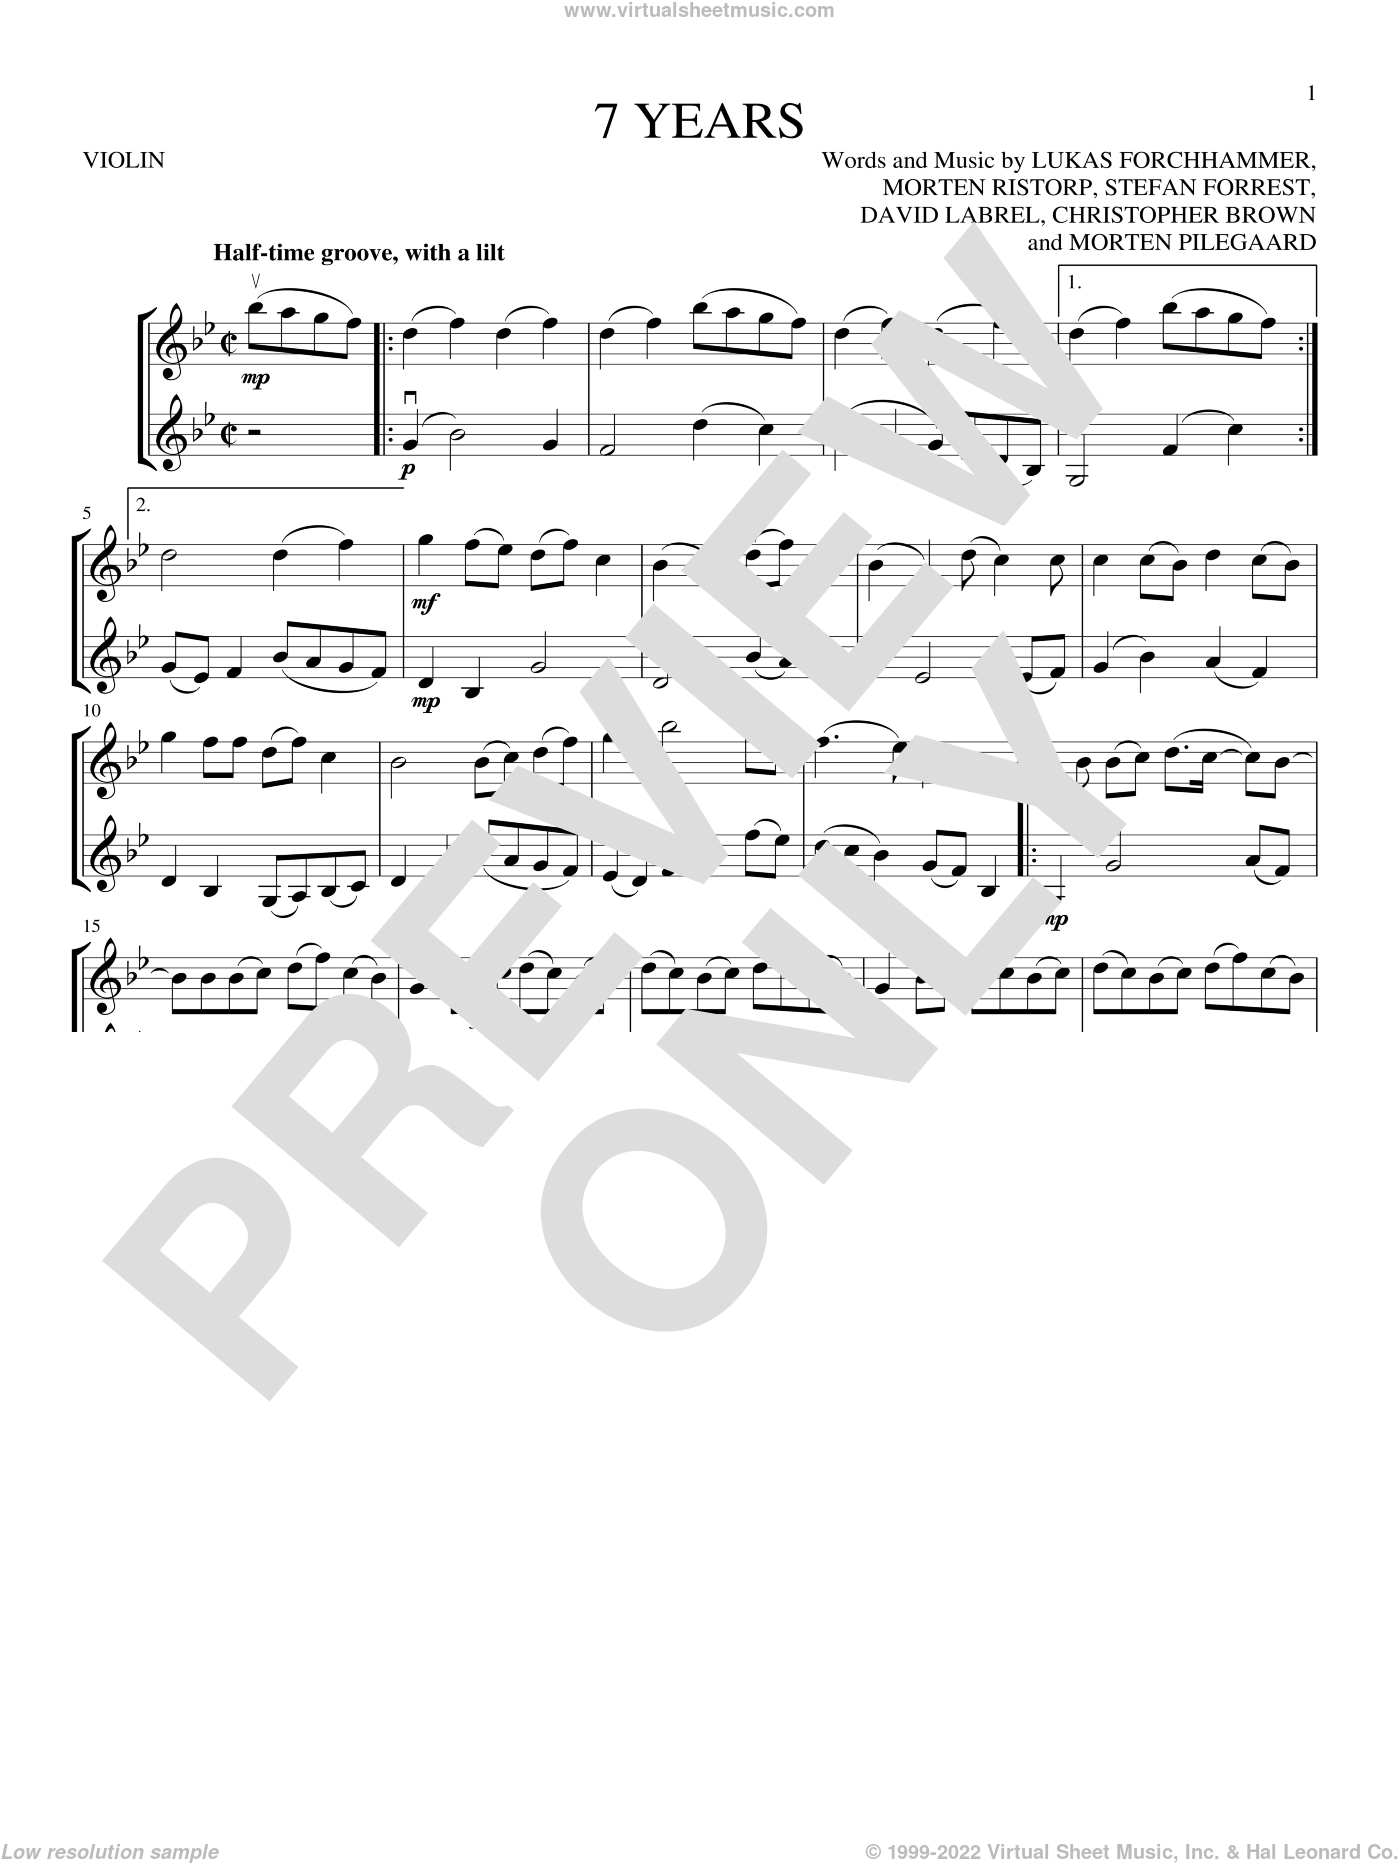 7 Years sheet music for two violins (duets, violin duets) by Lukas Graham, Chris Brown, David Labrel, Lukas Forchhammer, Morten Pilegaard, Morten Ristorp and Stefan Forrest, intermediate skill level